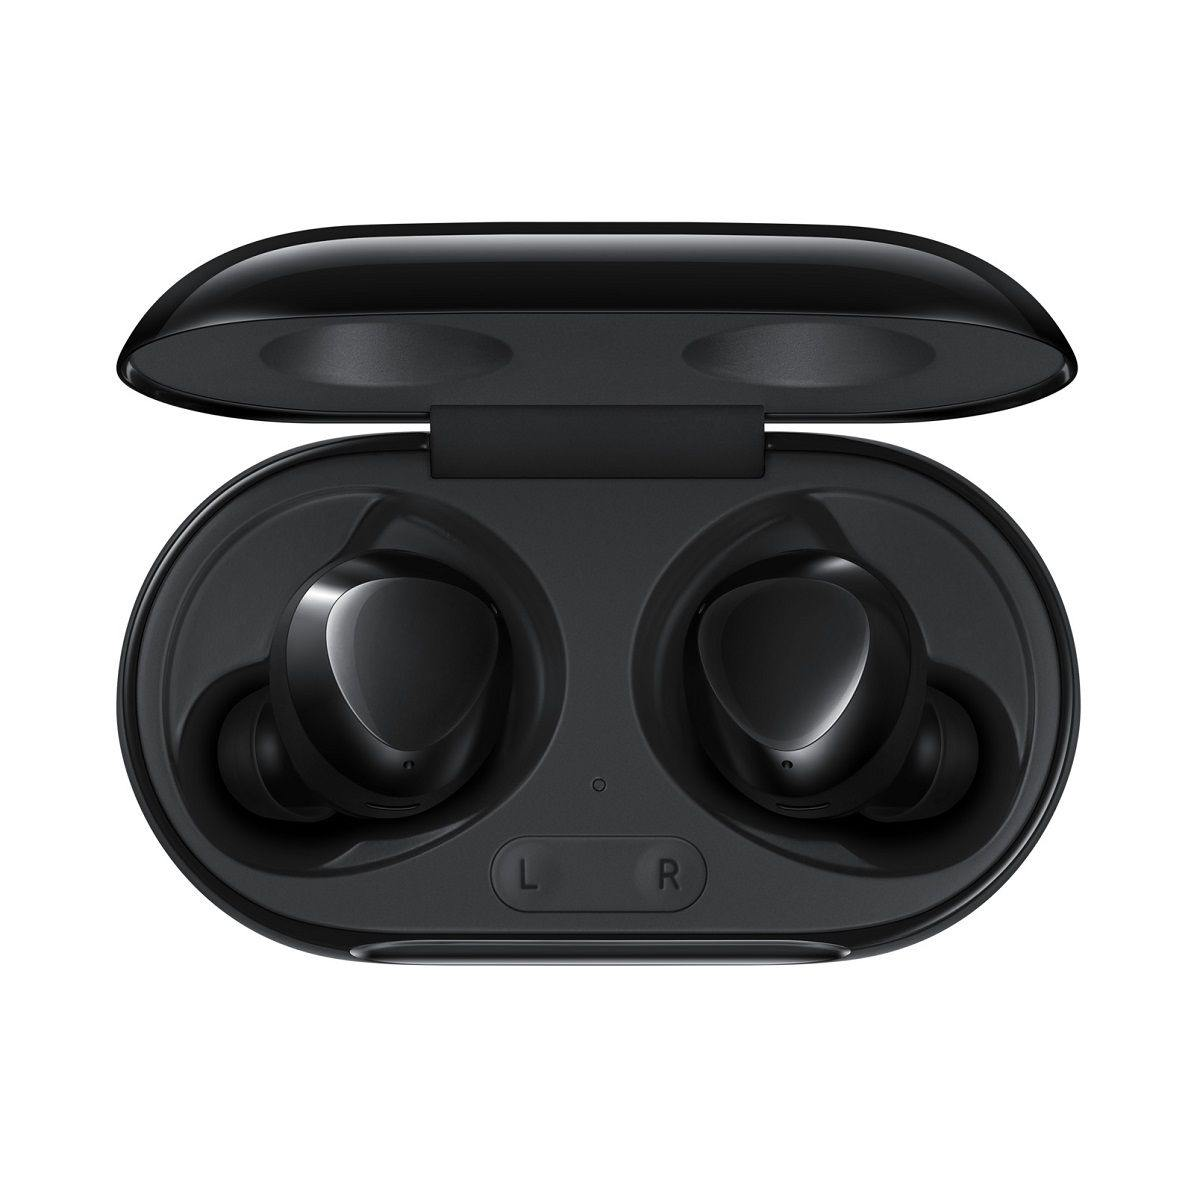 Official Samsung Galaxy Buds Plus Wireless Headphones Black SM-R175NZWAEUB - Uk Mobile Store